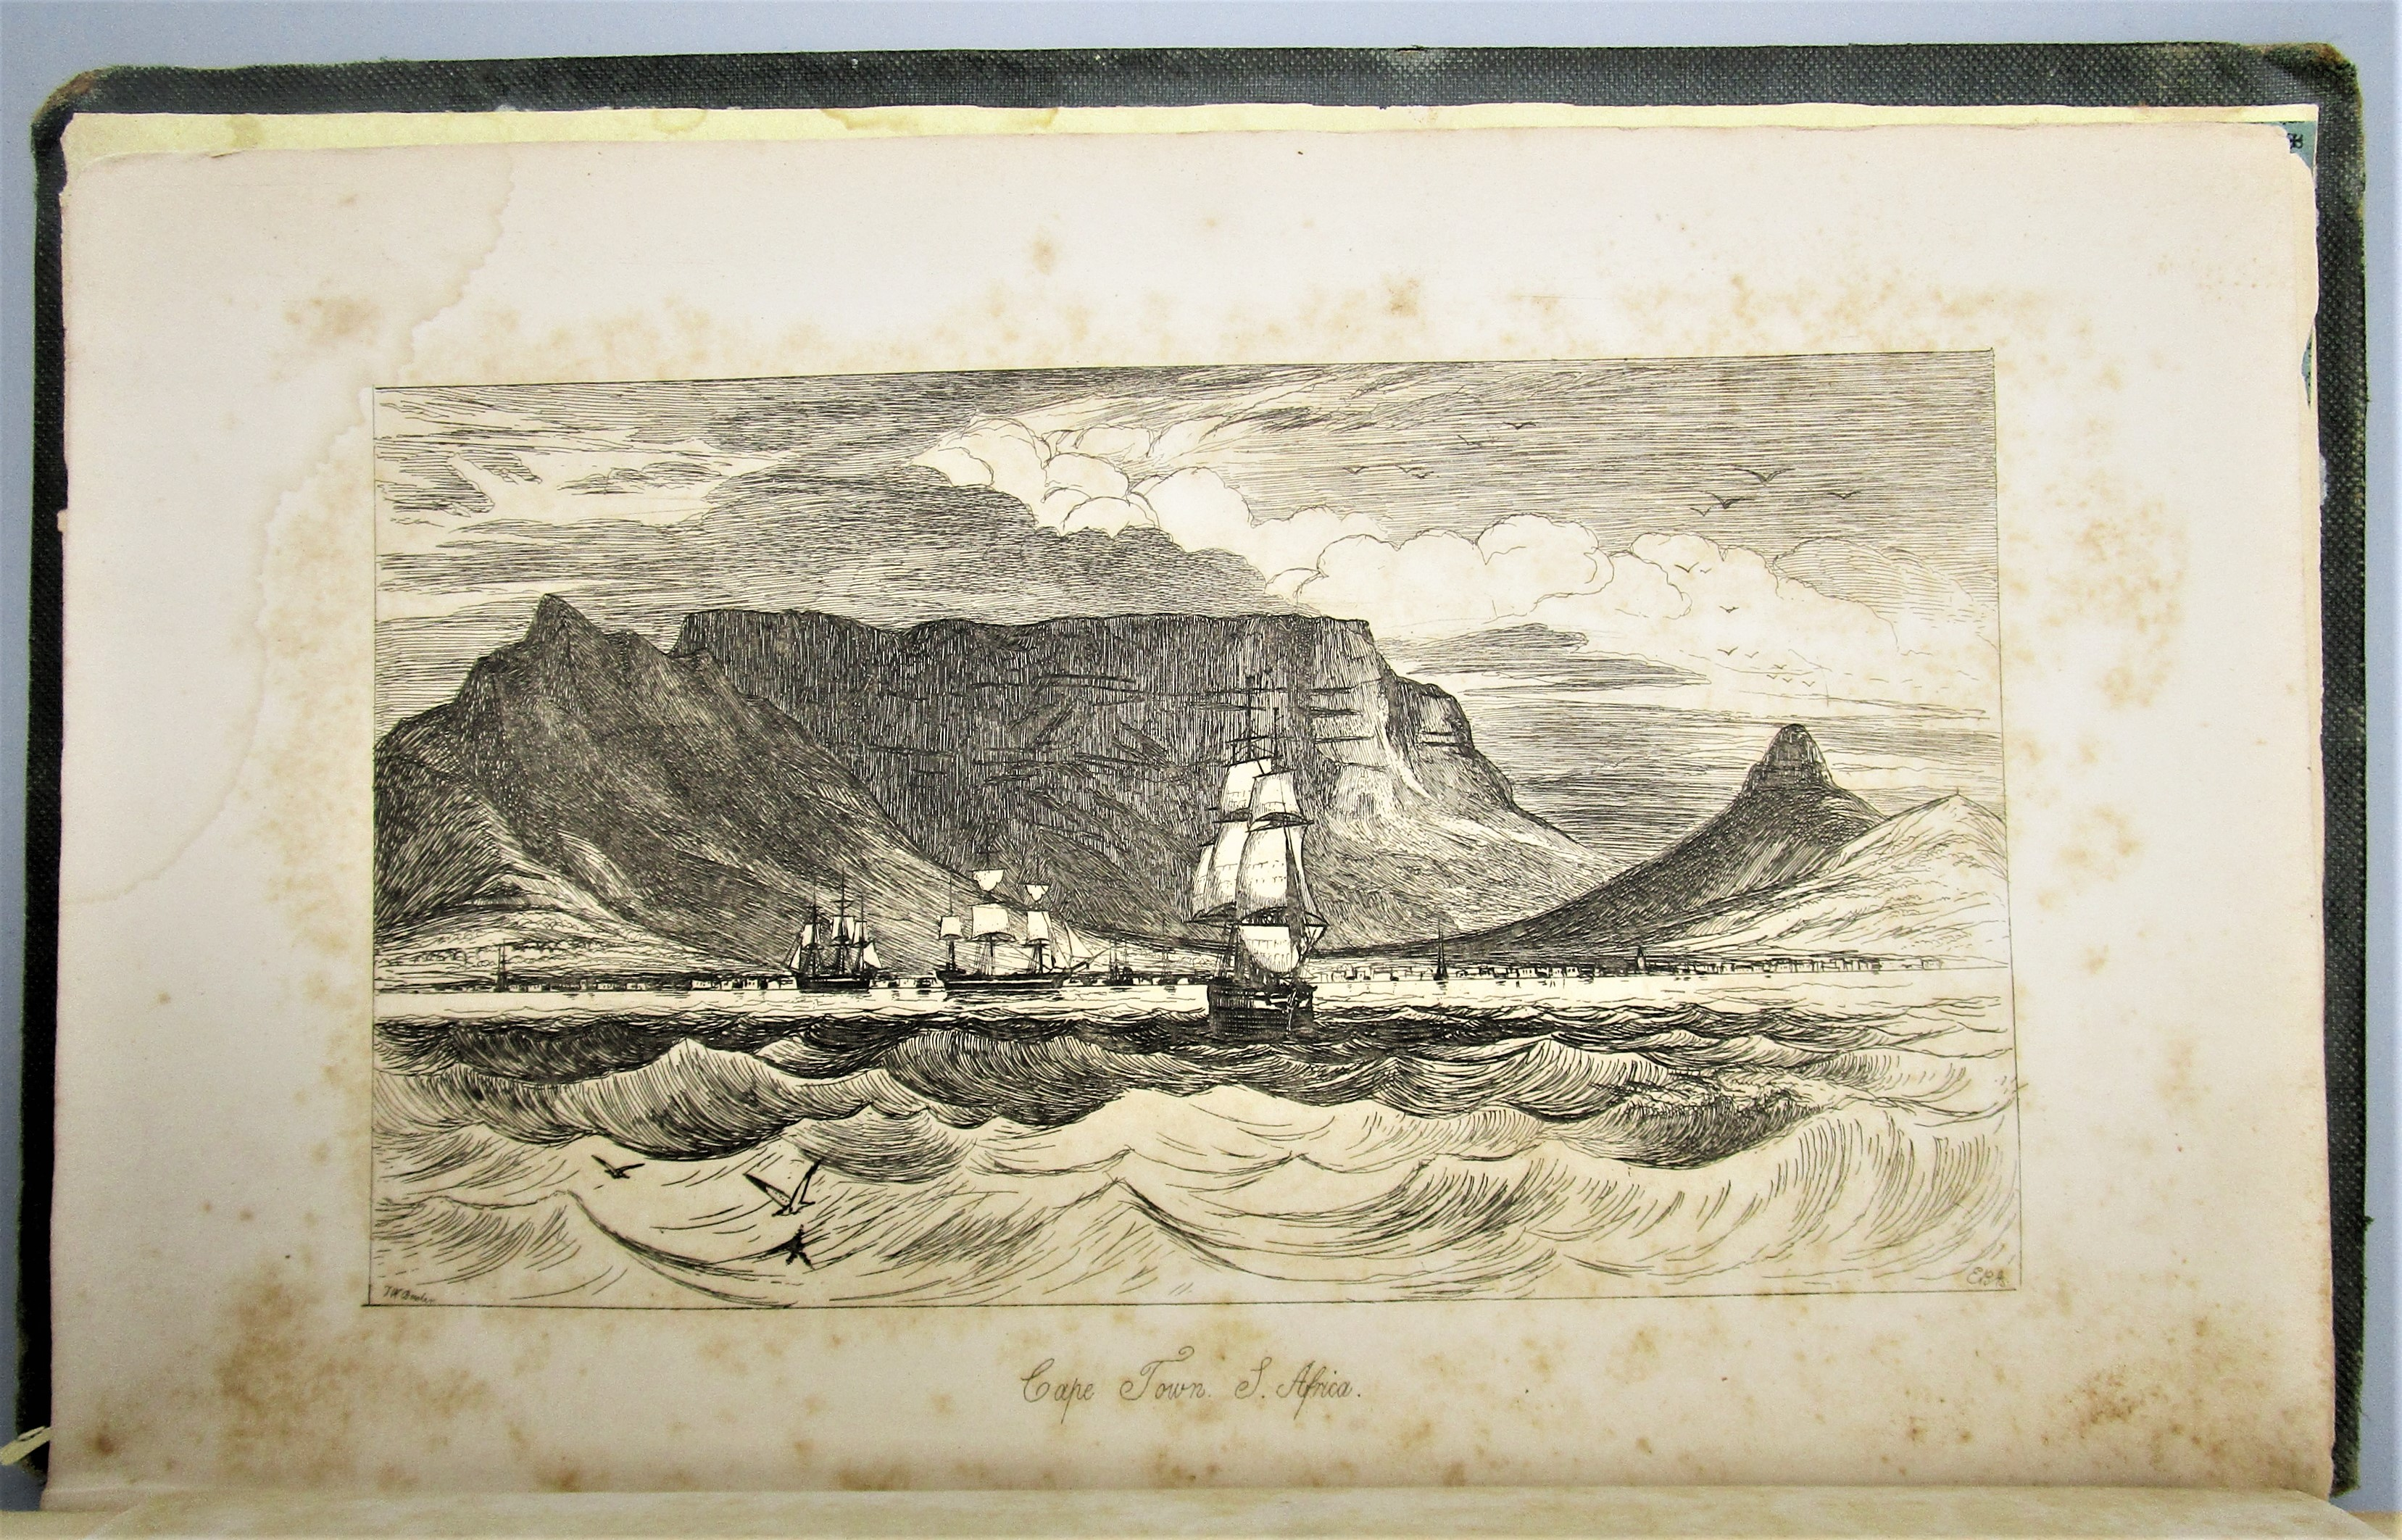 NARRATIVE OF A VISIT TO THE MAURITIUS AND S. AFRICA, by James Backhouse - 1844 [1st Ed]*Maps*